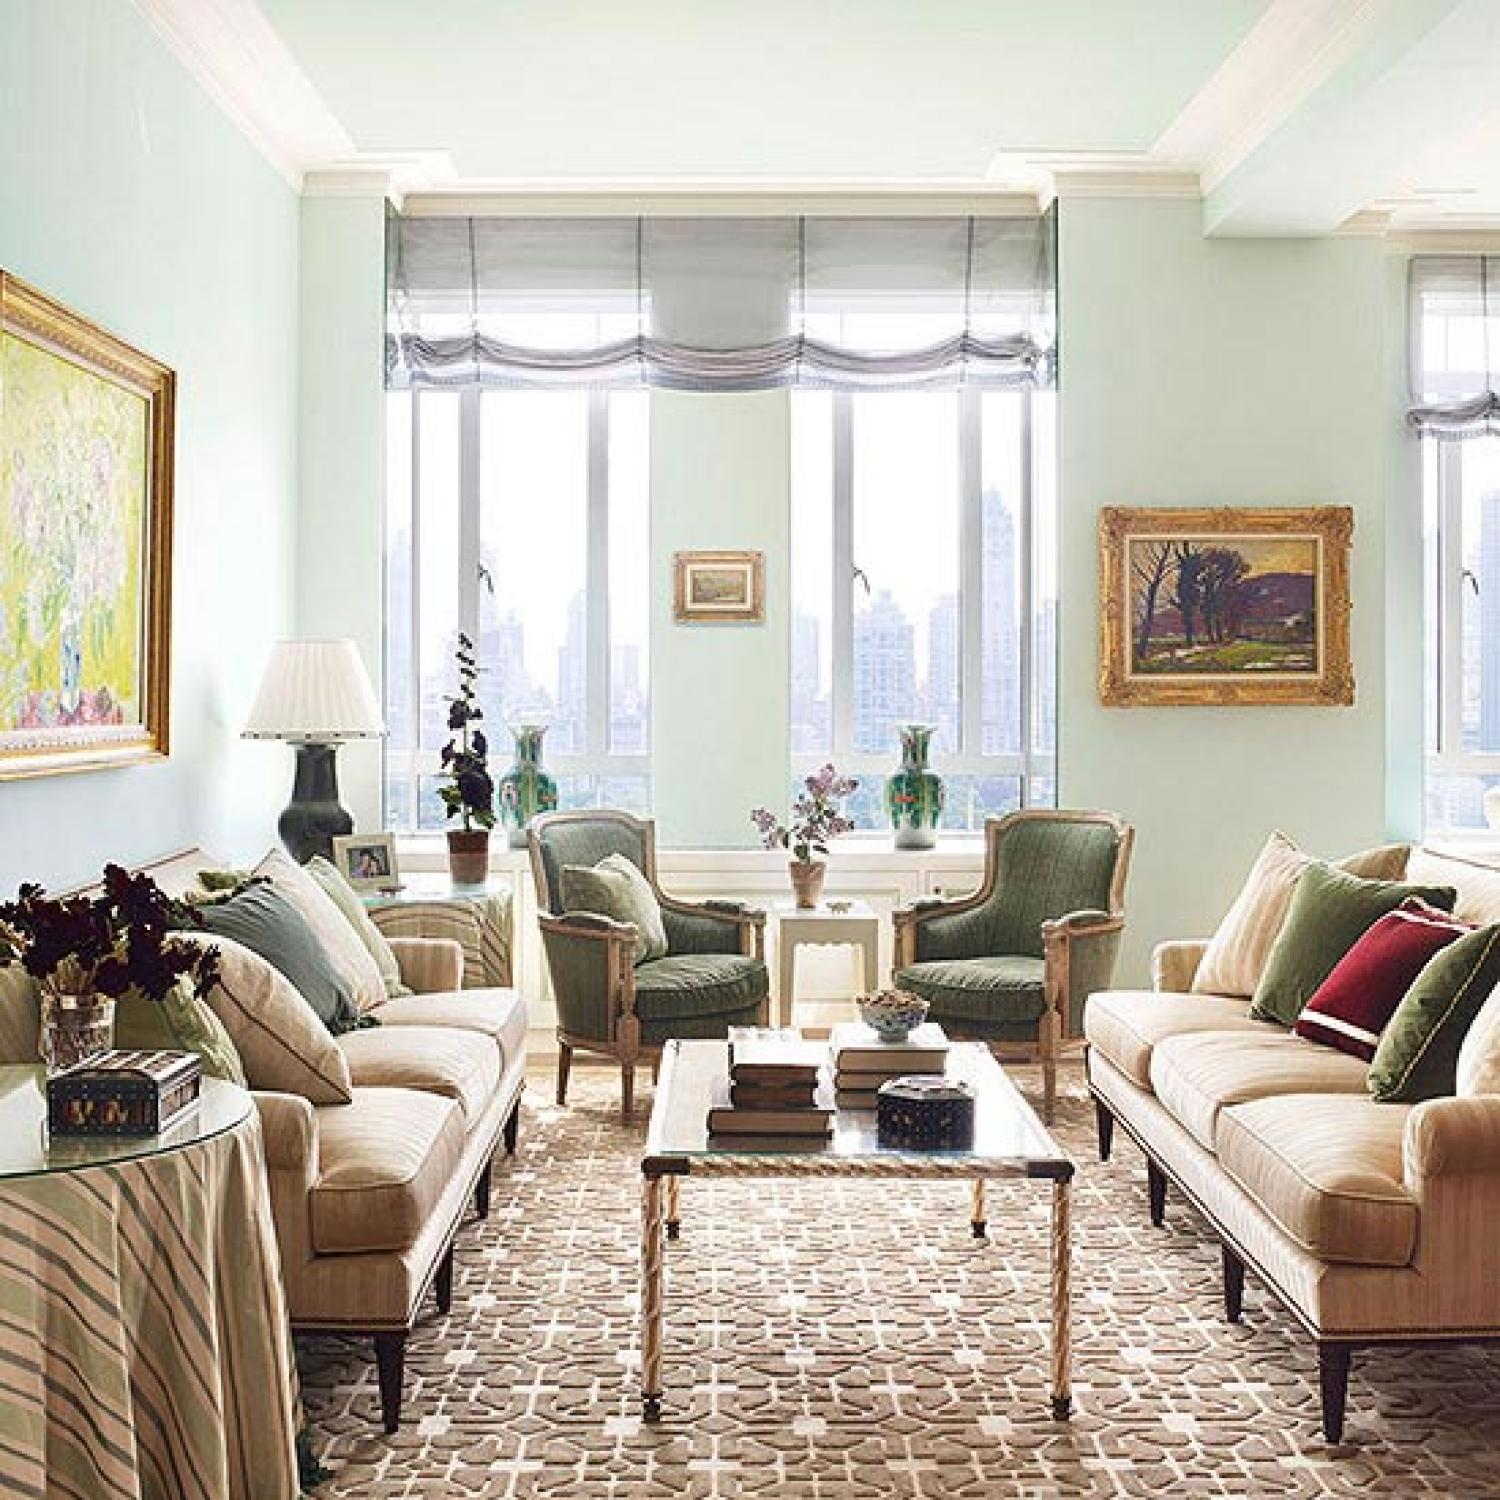 Styles Of Homes In Our Area: New York Apartment With Elegant British Style